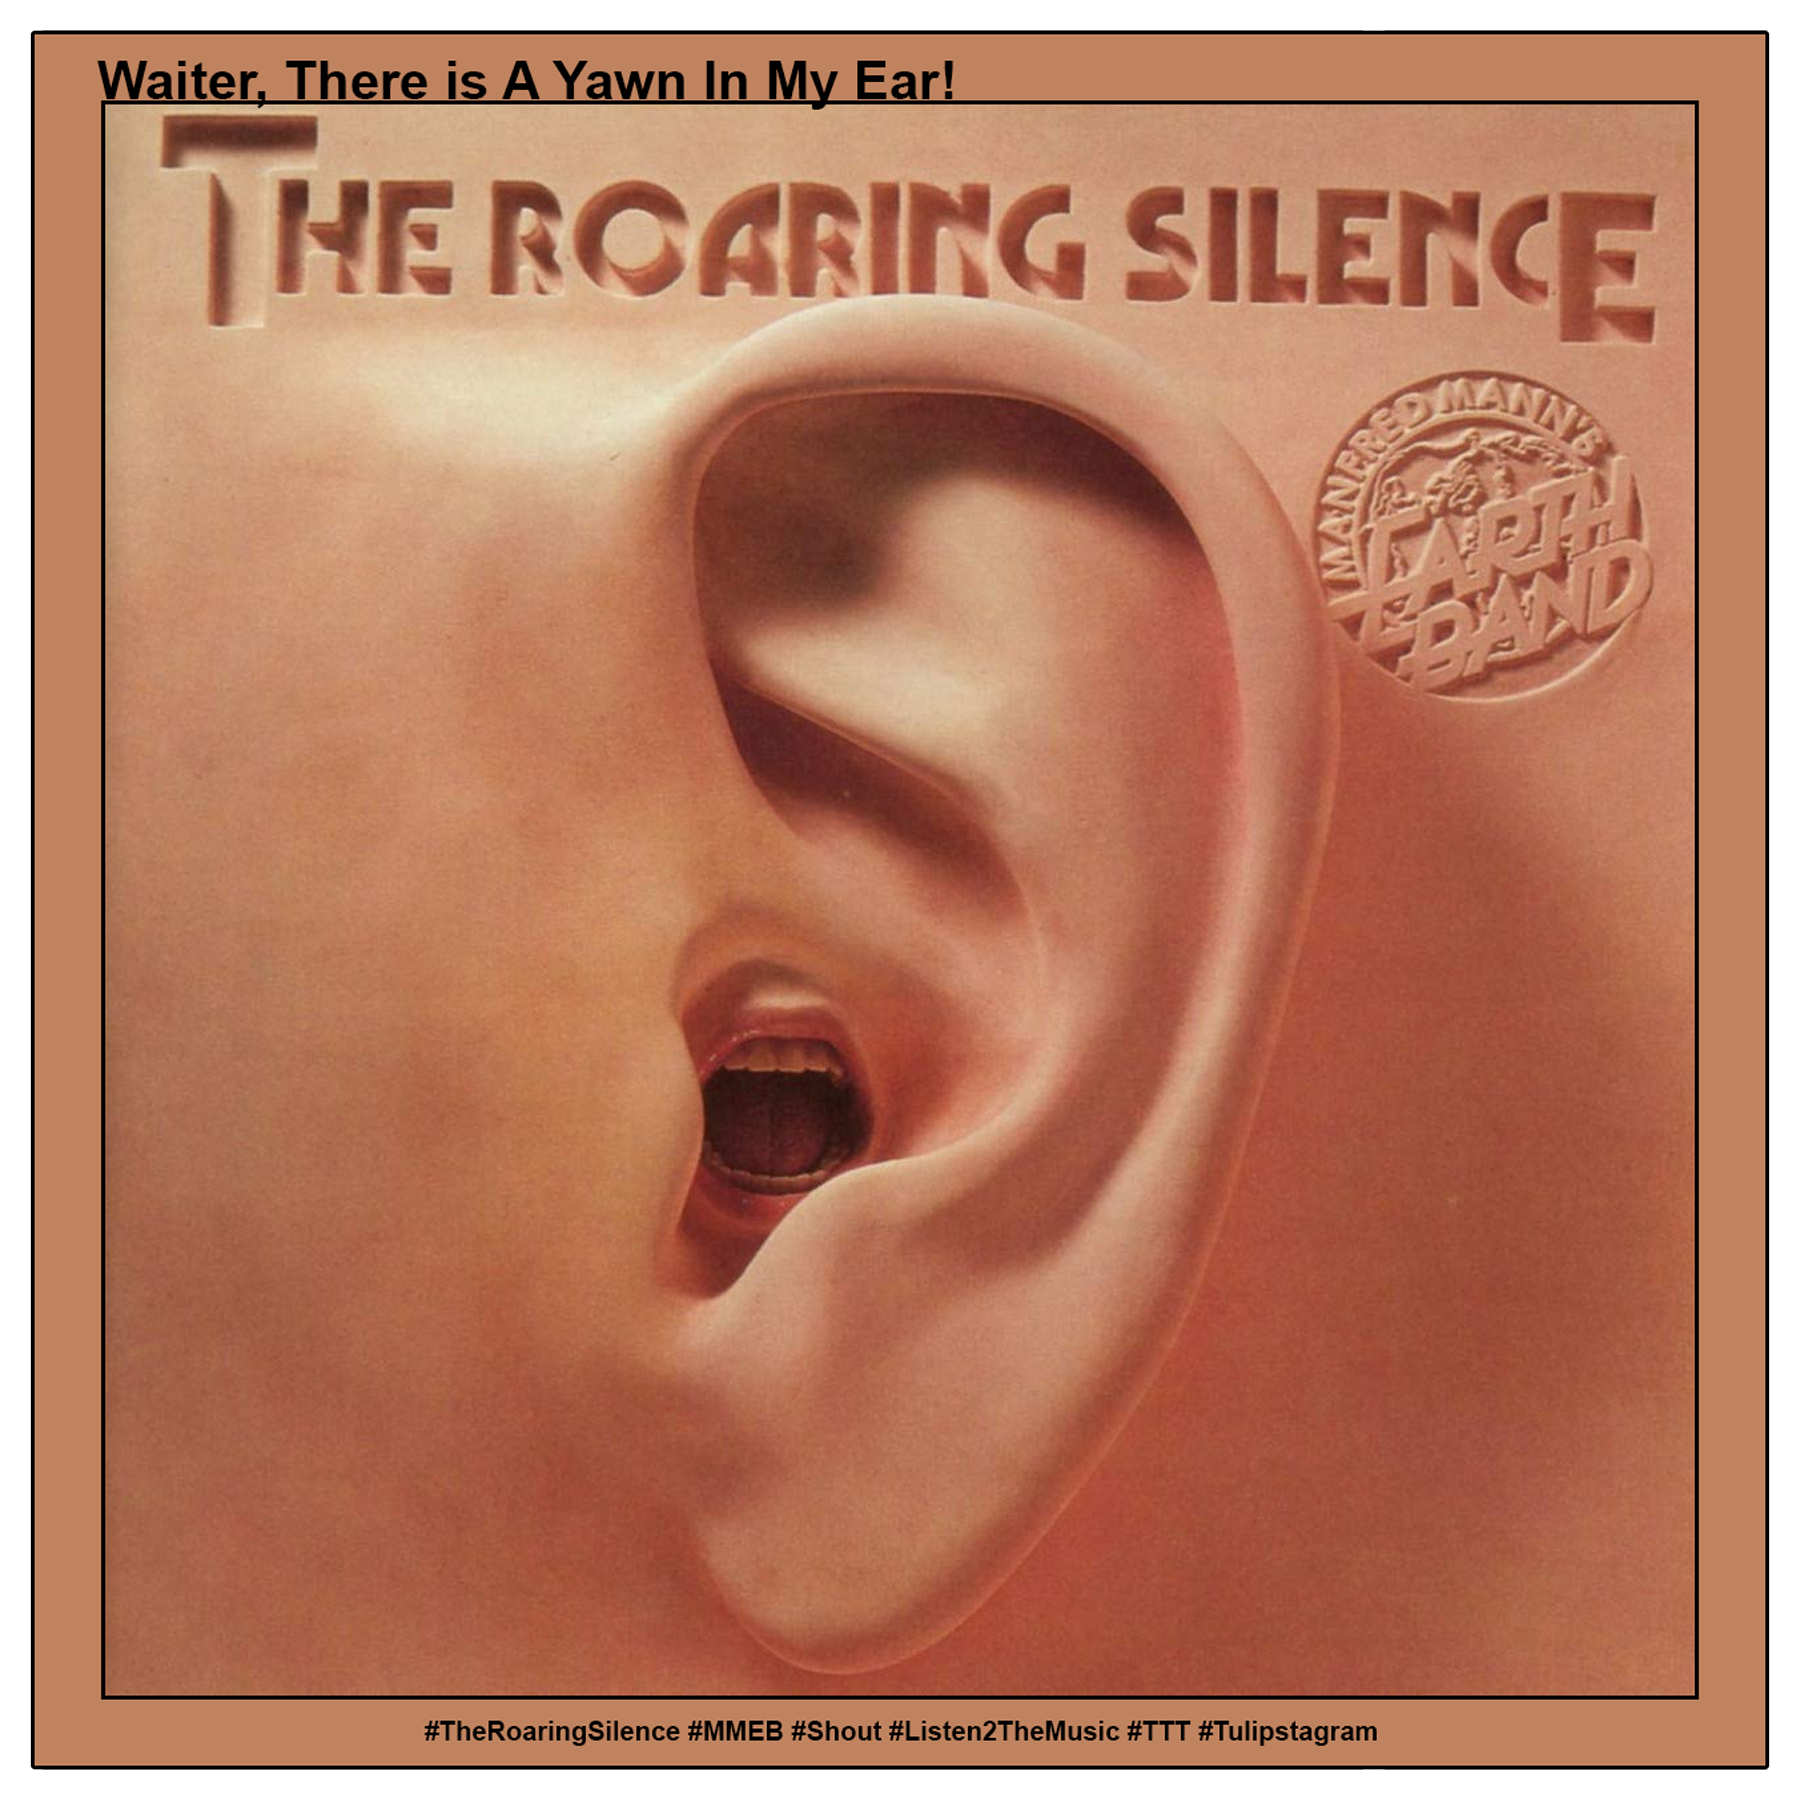 Waiter, There Is A Yawn In My Ear #TheRoaringSilence #MMEB #Shout #Listen2TheMusic #TTT #Tulipstagram